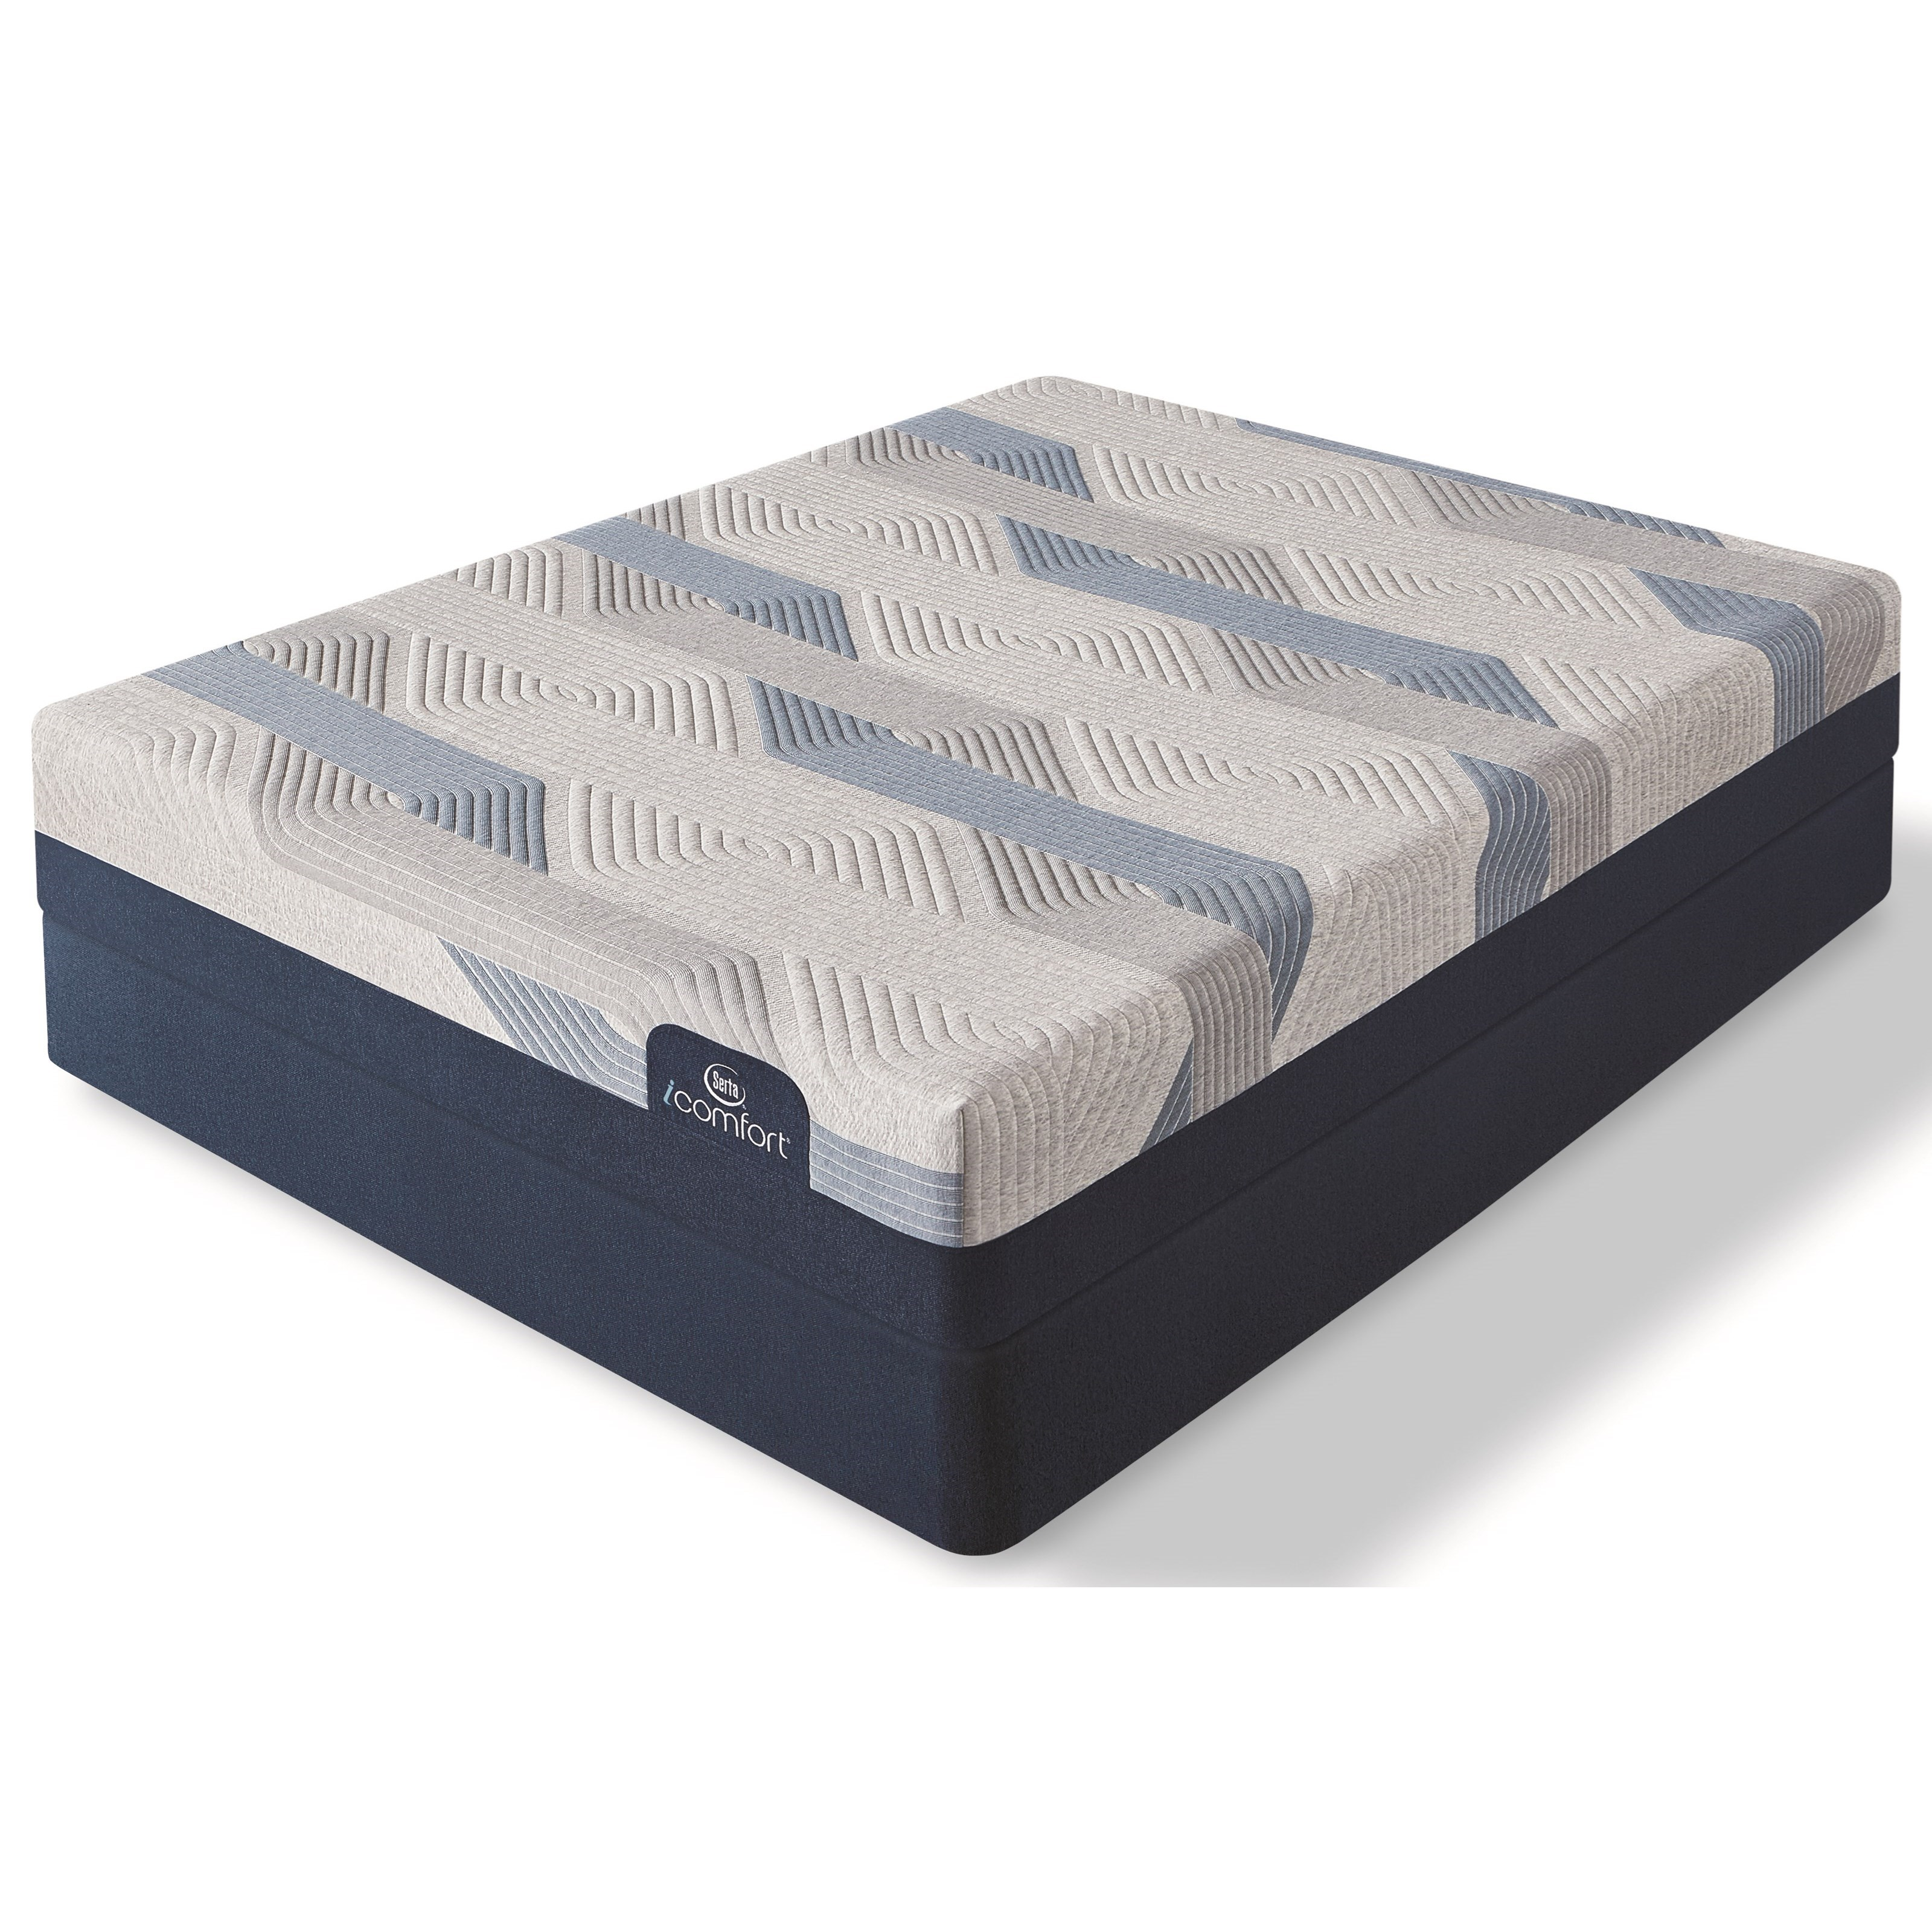 Full Memory Foam Mattress Set